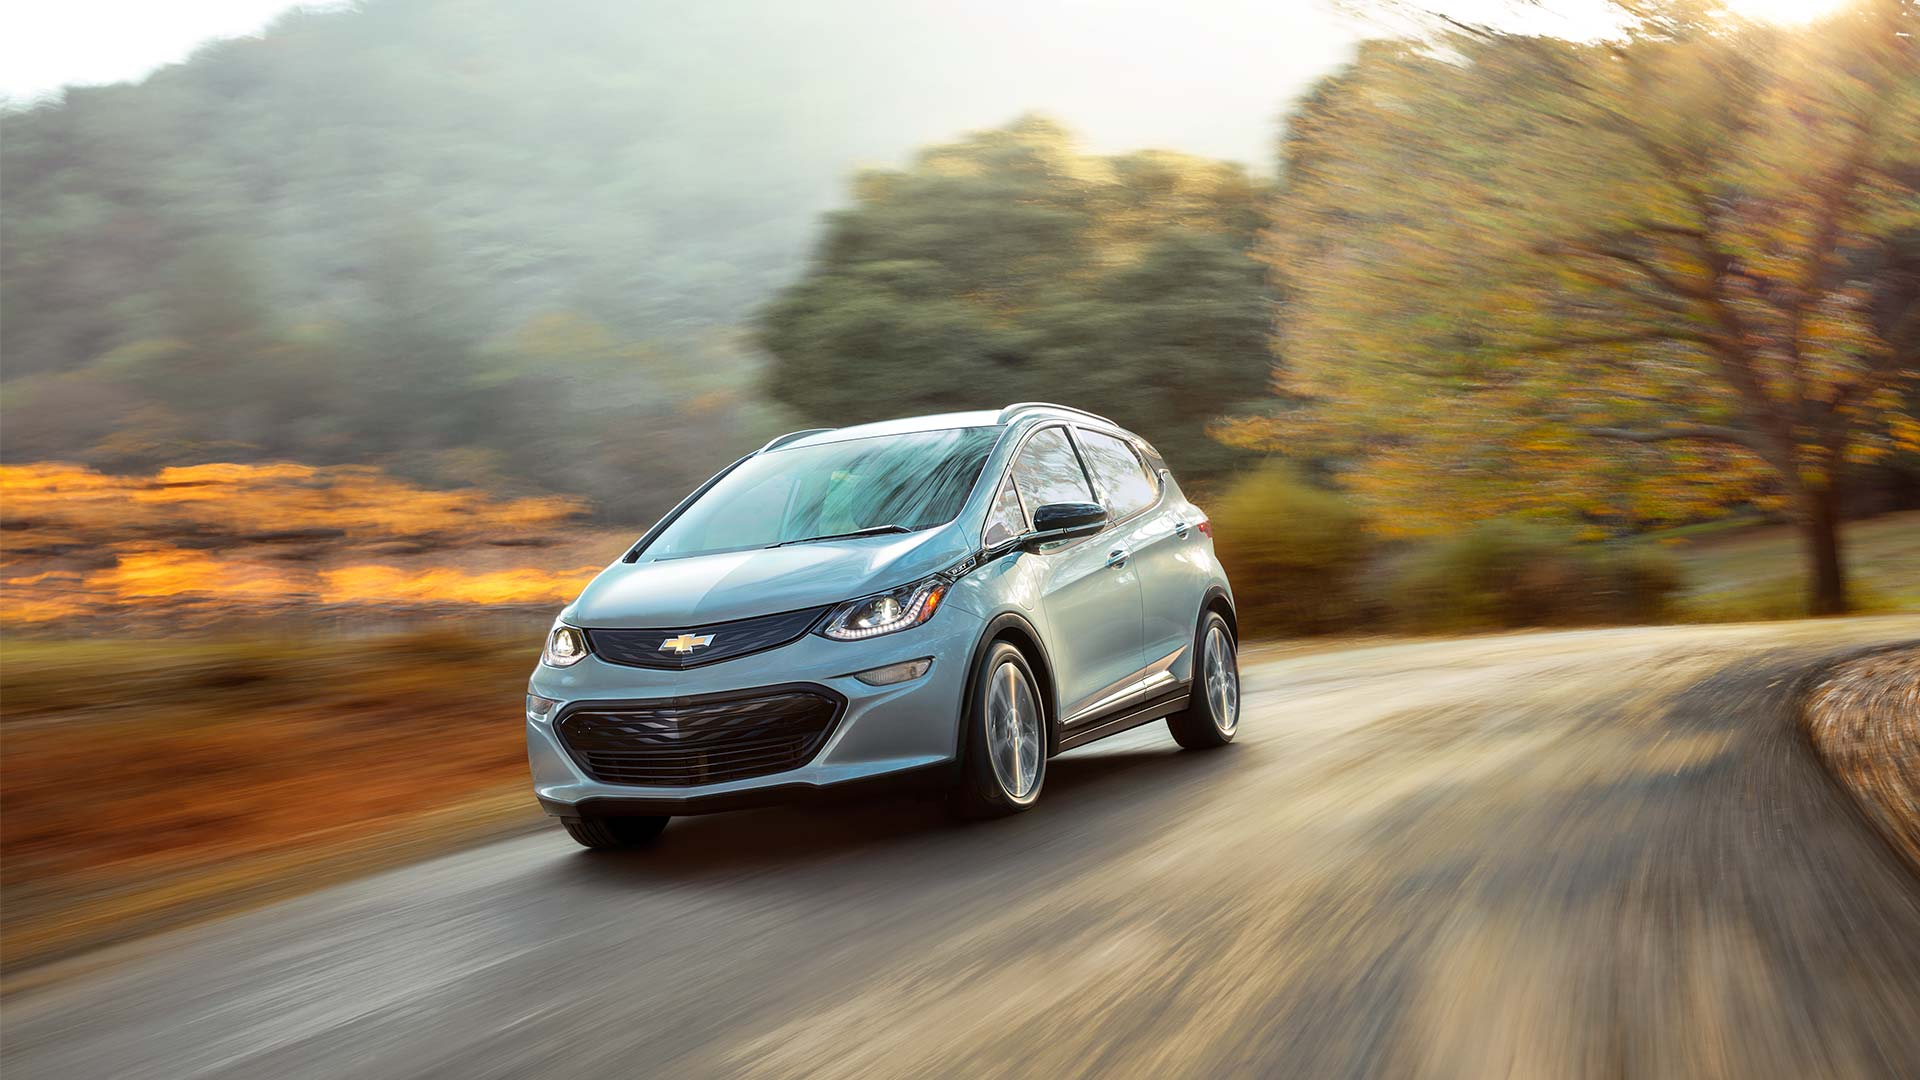 Valley Chevy - Which EV Vehicle is Cheapest?